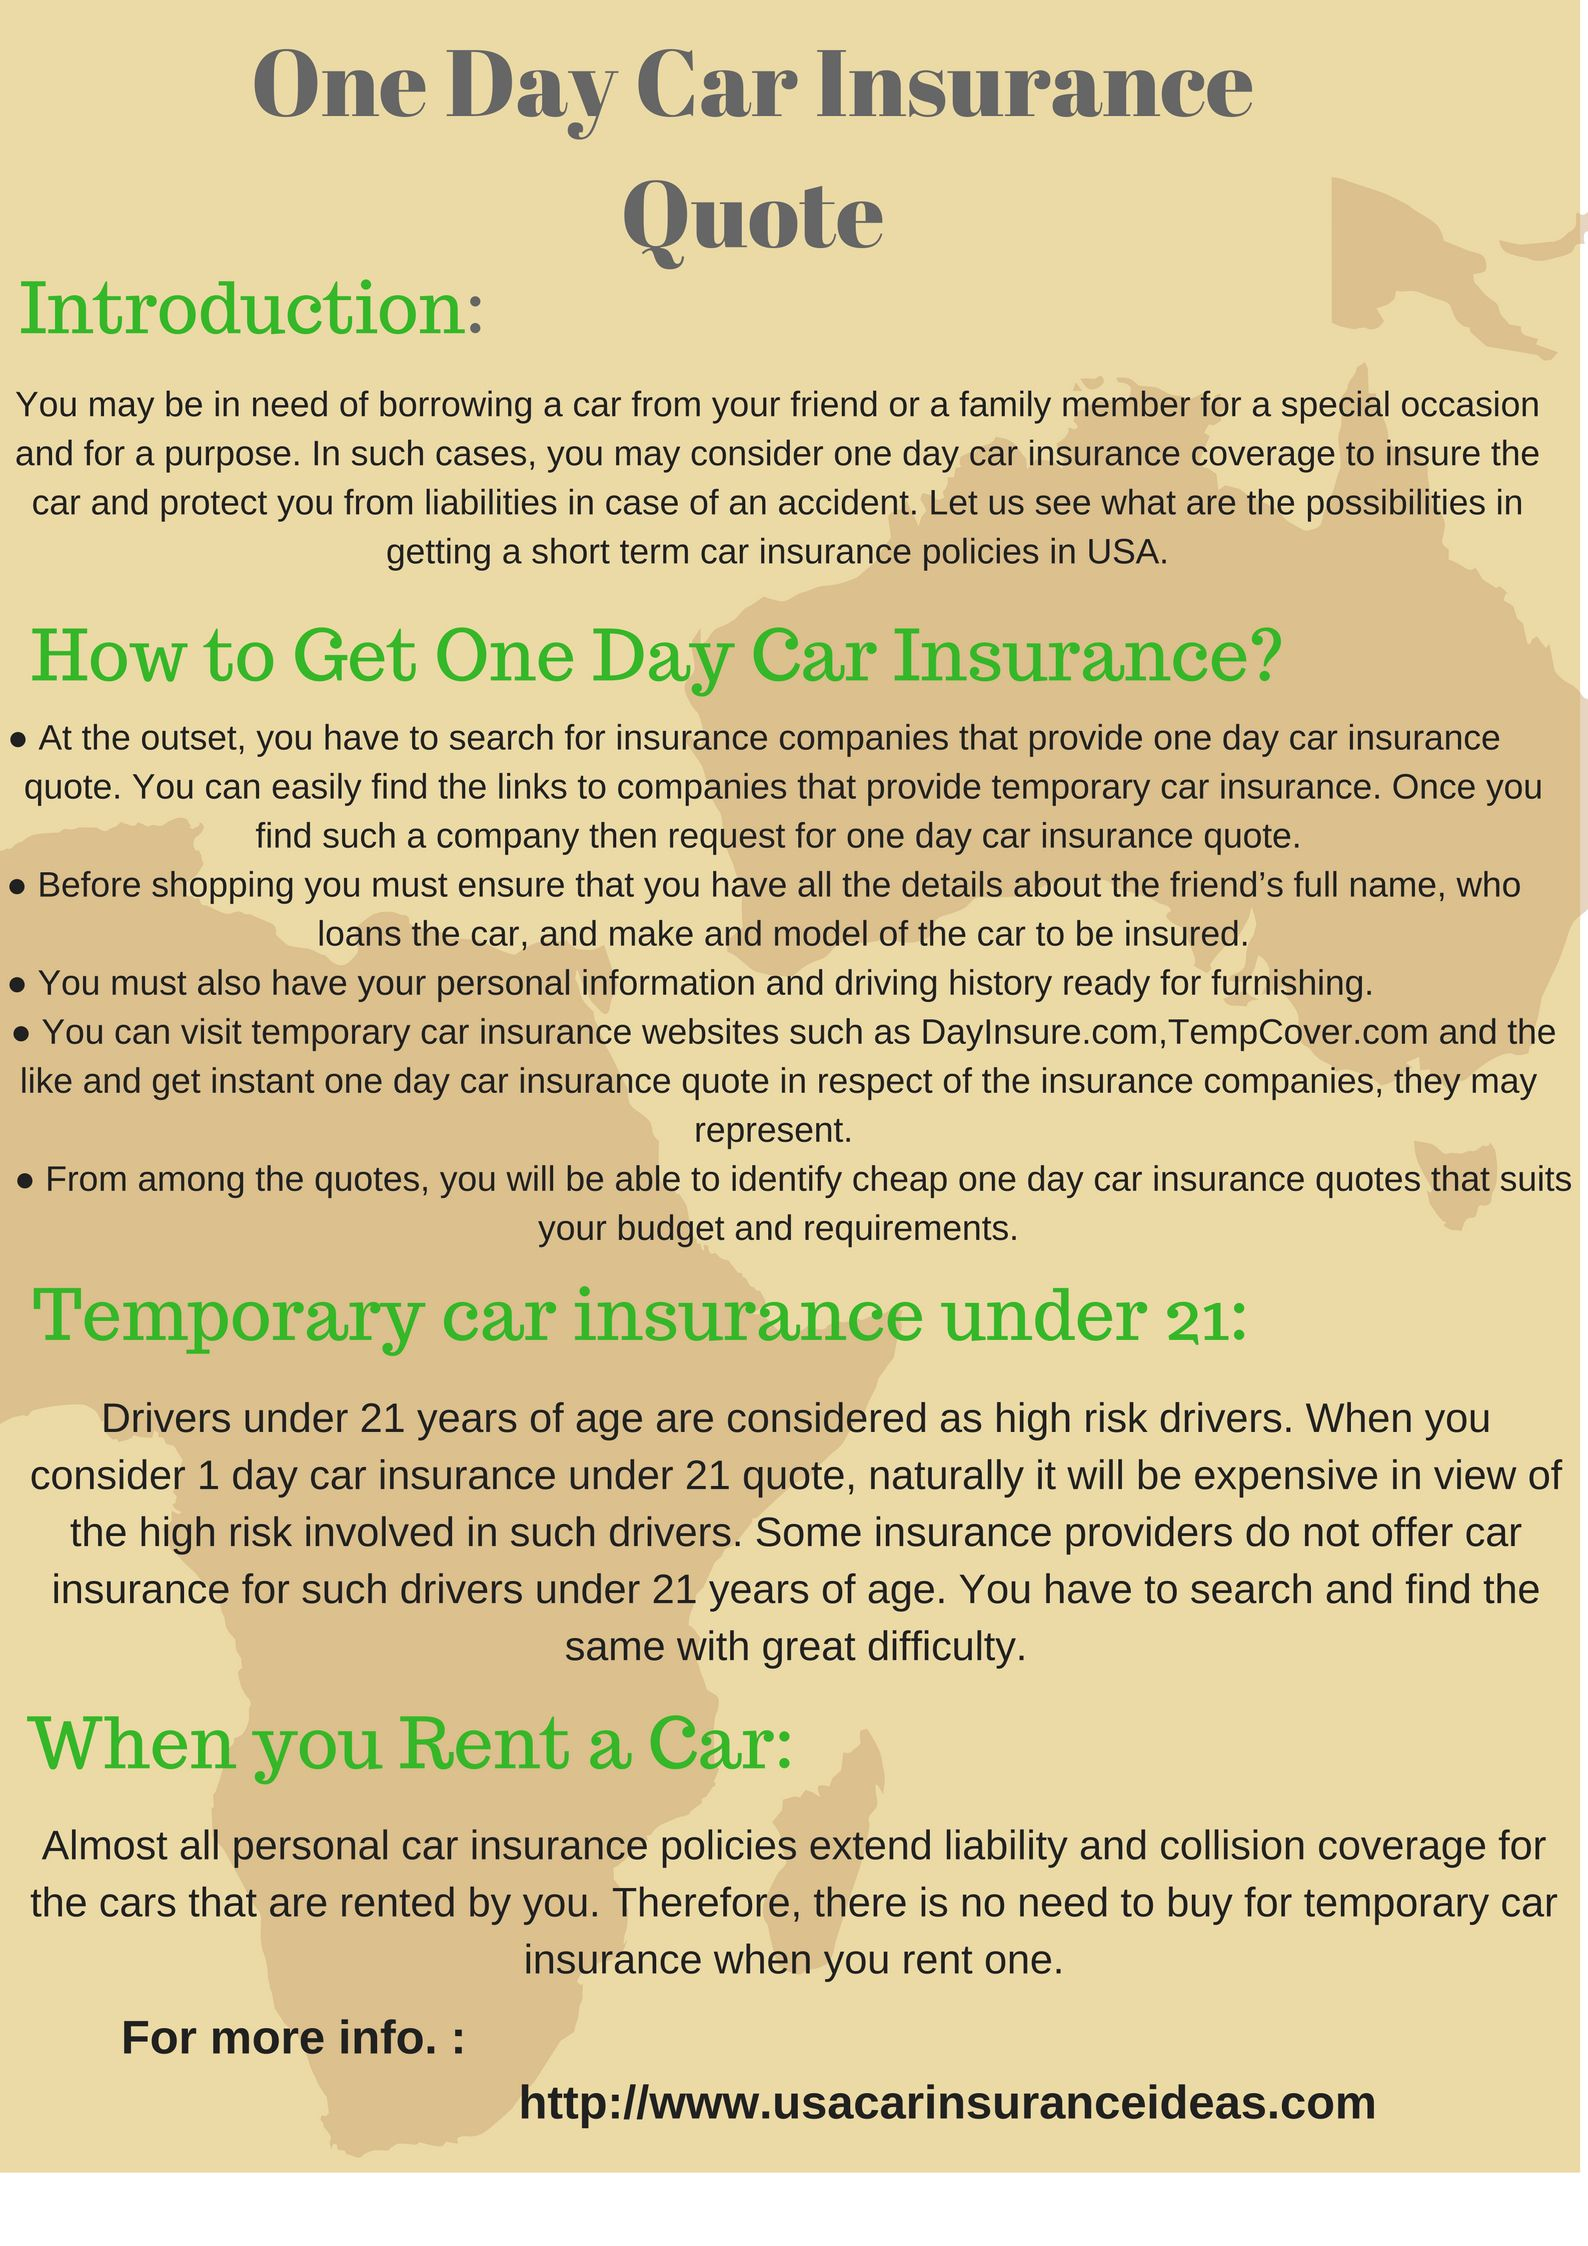 You May Be In Need Of Borrowing A Car From Your Friend Or A Family